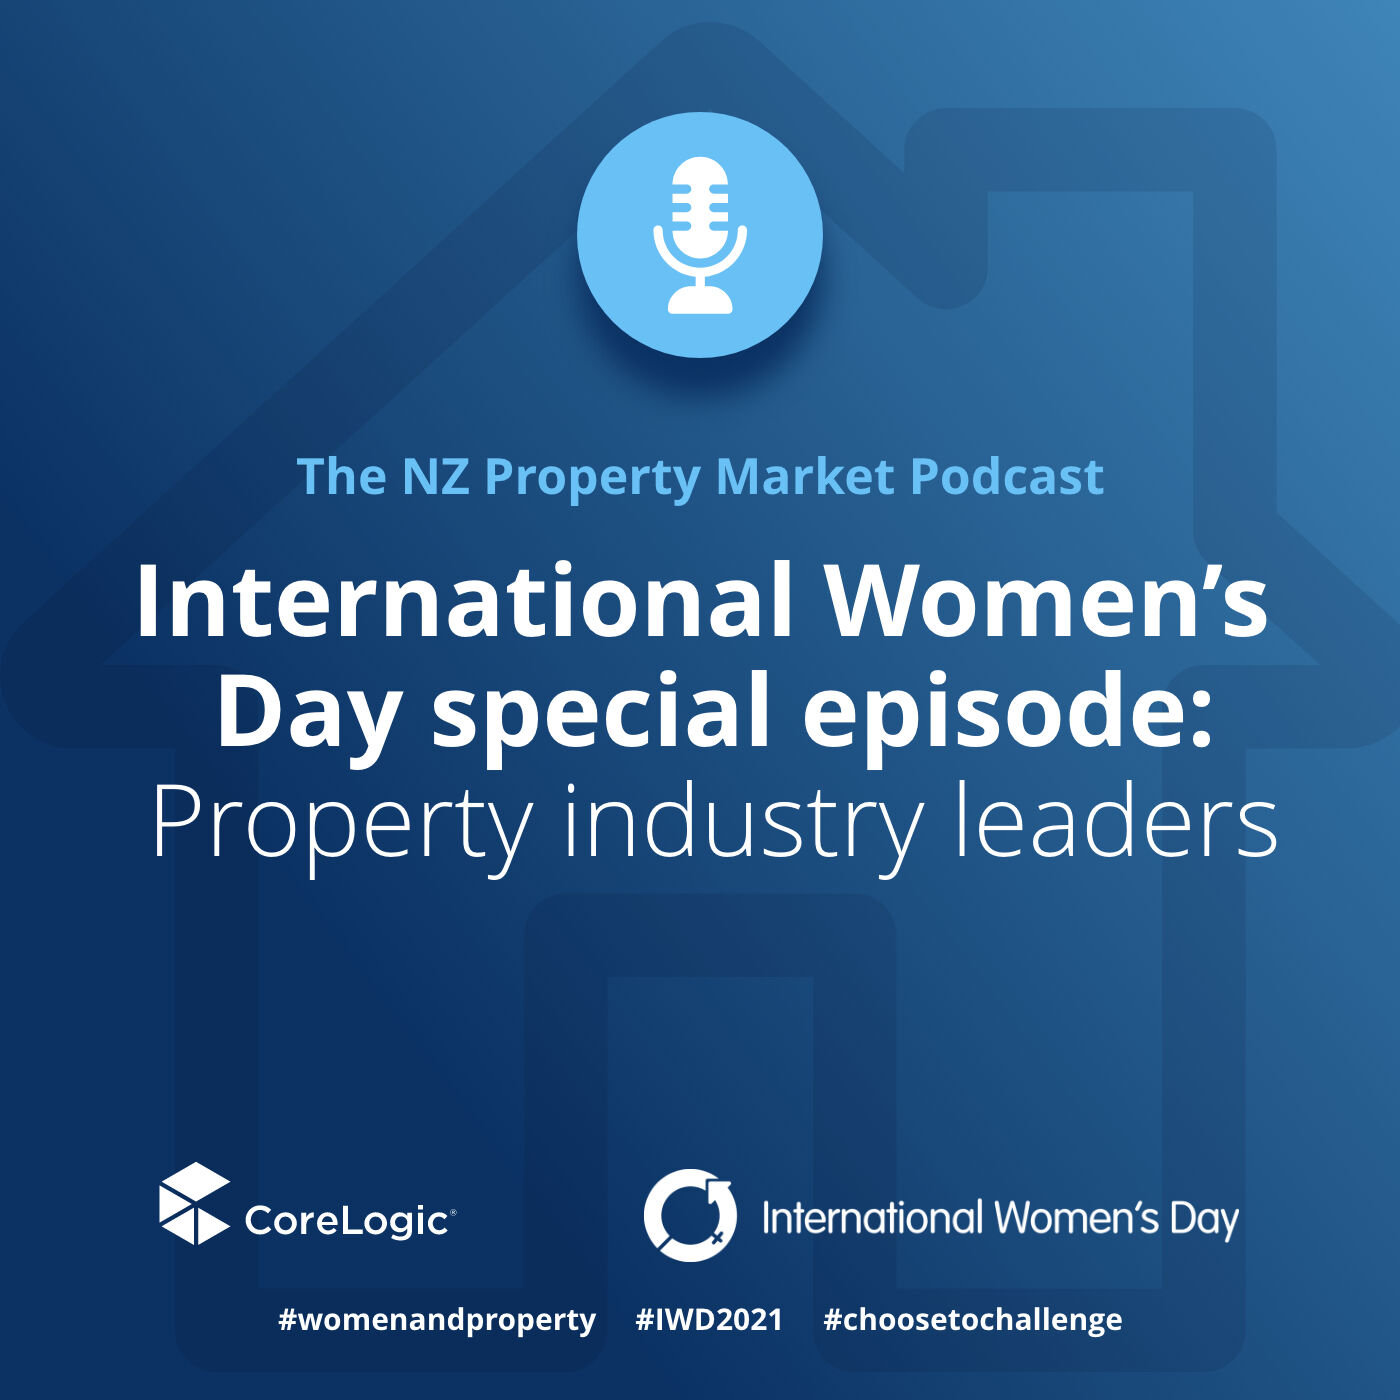 International Women's Day special: Property industry leaders